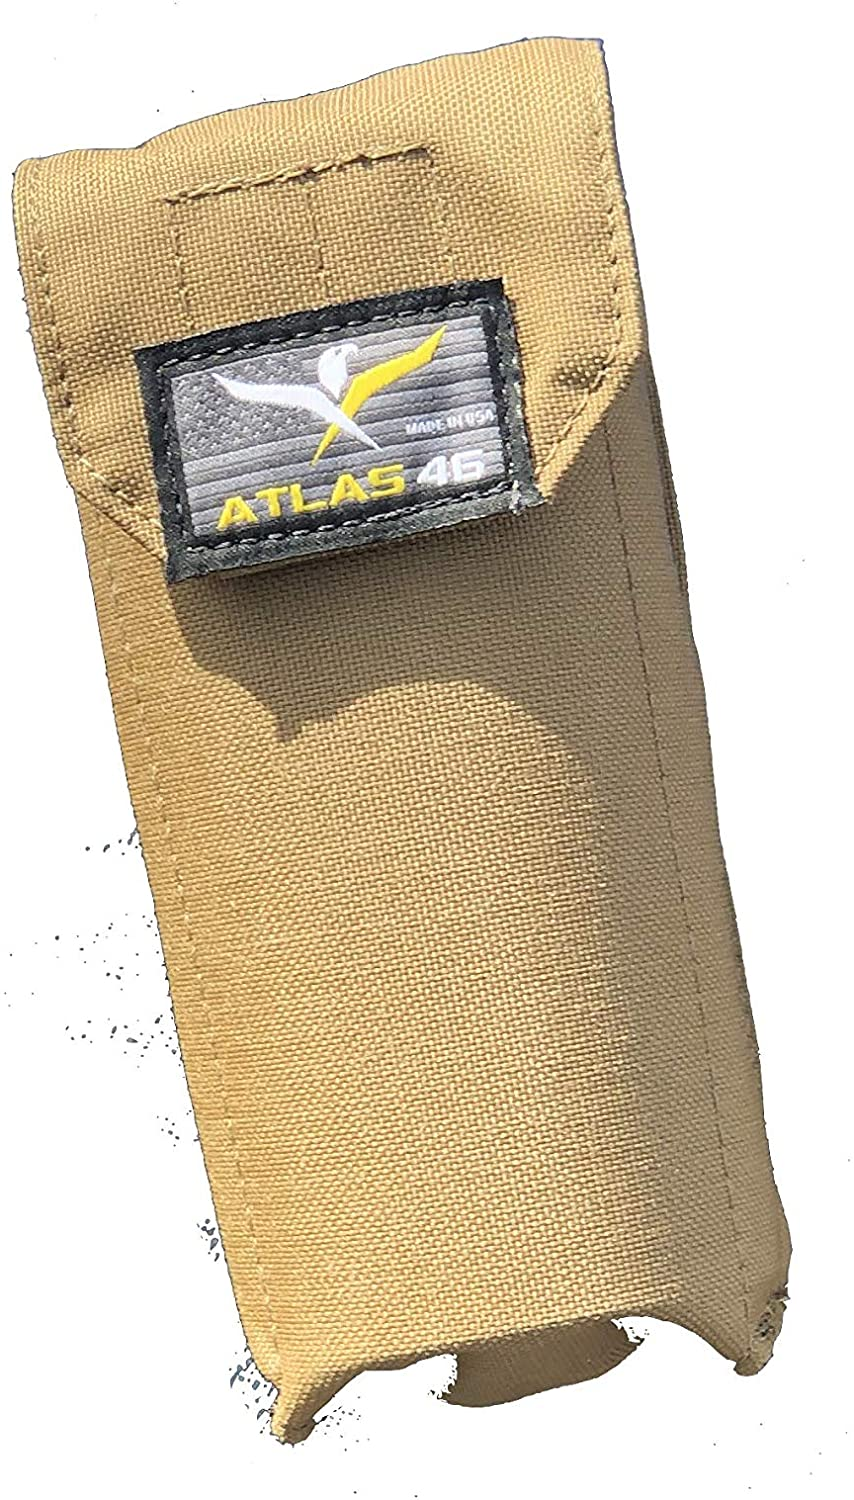 Atlas 46 AIMS Safety Glasses Pouch